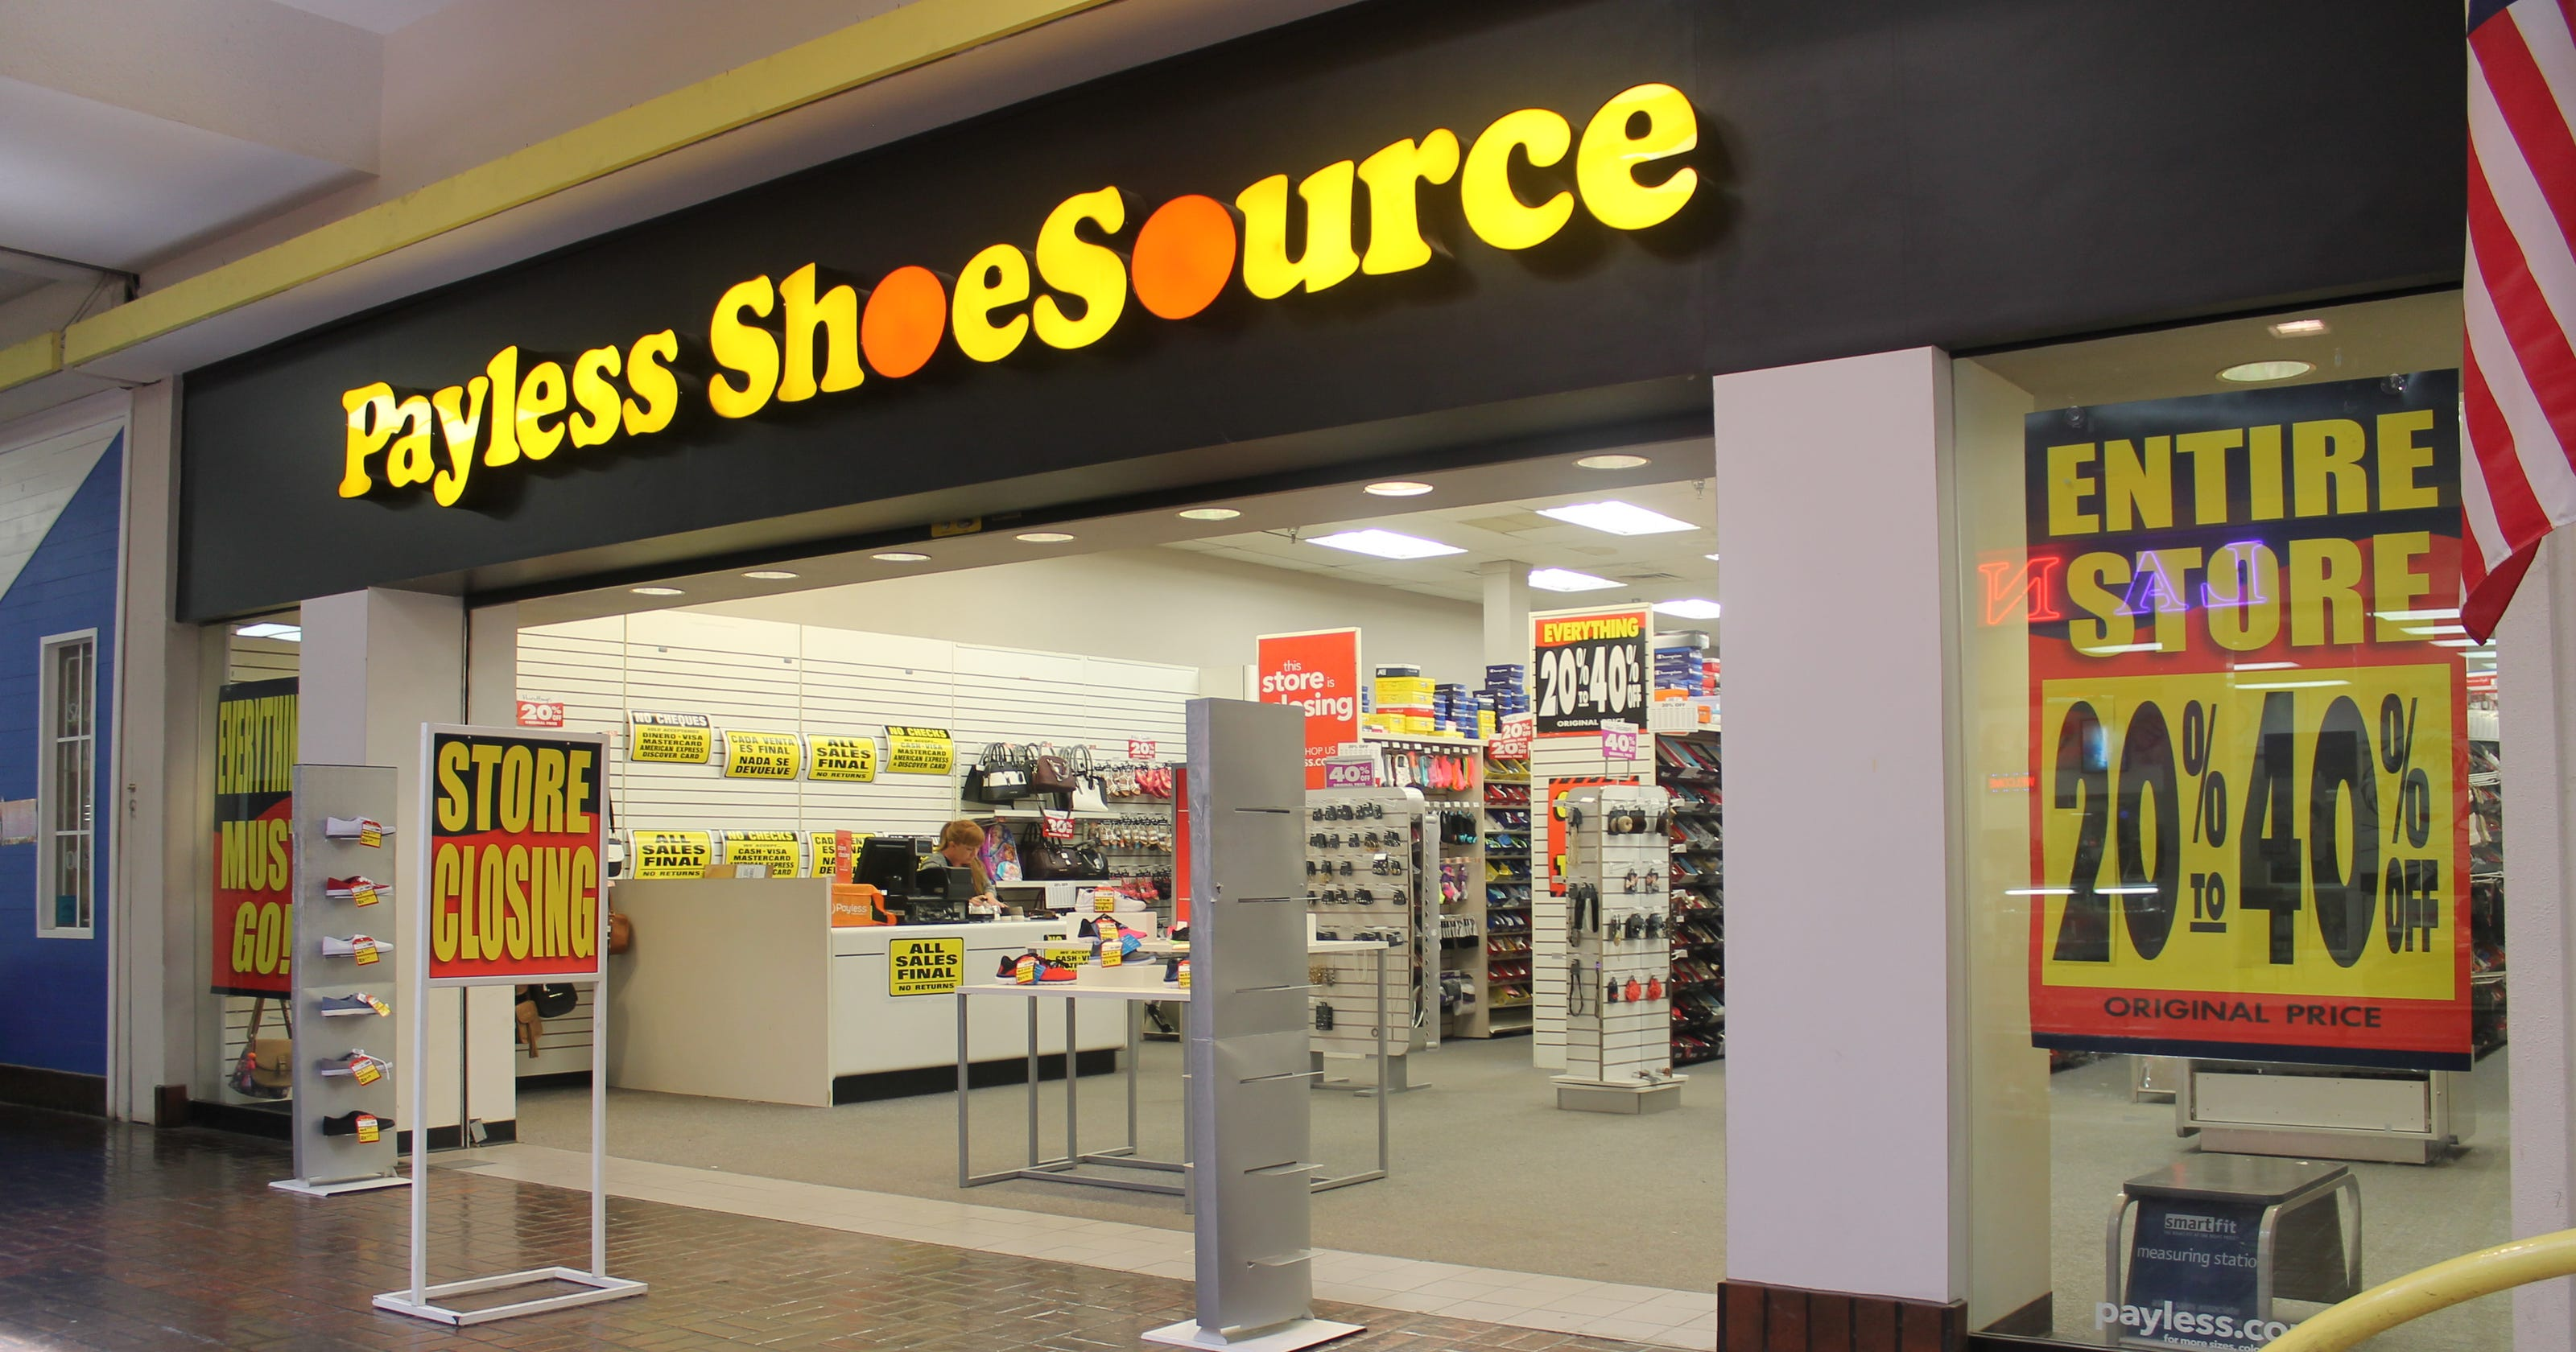 Get directions, reviews and information for Payless ShoeSource in Las Vegas, NV. Payless ShoeSource W Charleston Blvd Las Vegas NV 7 Reviews () Website. I went to buy shoes for my 2 kids and the sales associate, Mahnaz, was so helpful! She was very attentive with what we wanted and what my kids' preferences are.7/10(7).